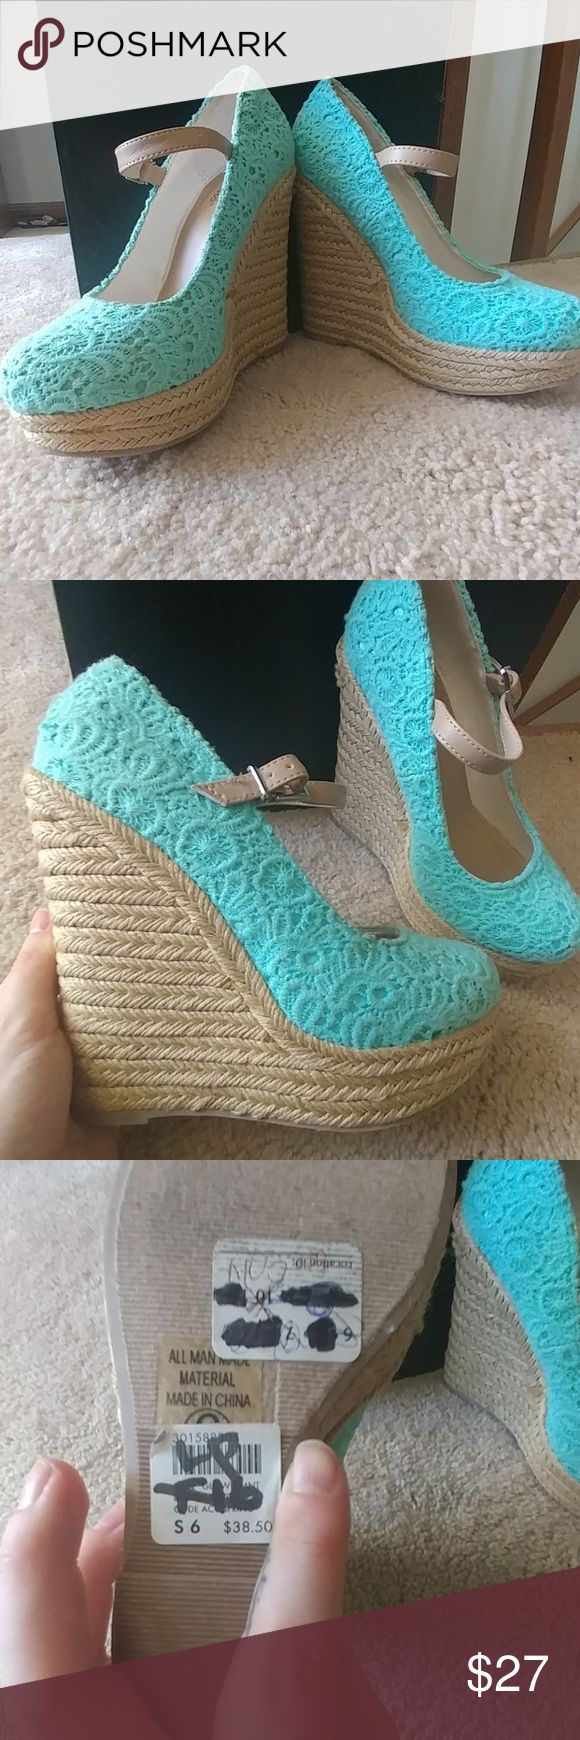 NWT Mint Wedges Perfect for spring! Mint green Charlotte Russe wedges. Never worn, but does not come with box. Size 6. I consider all offers. Charlotte Russe Shoes Wedges